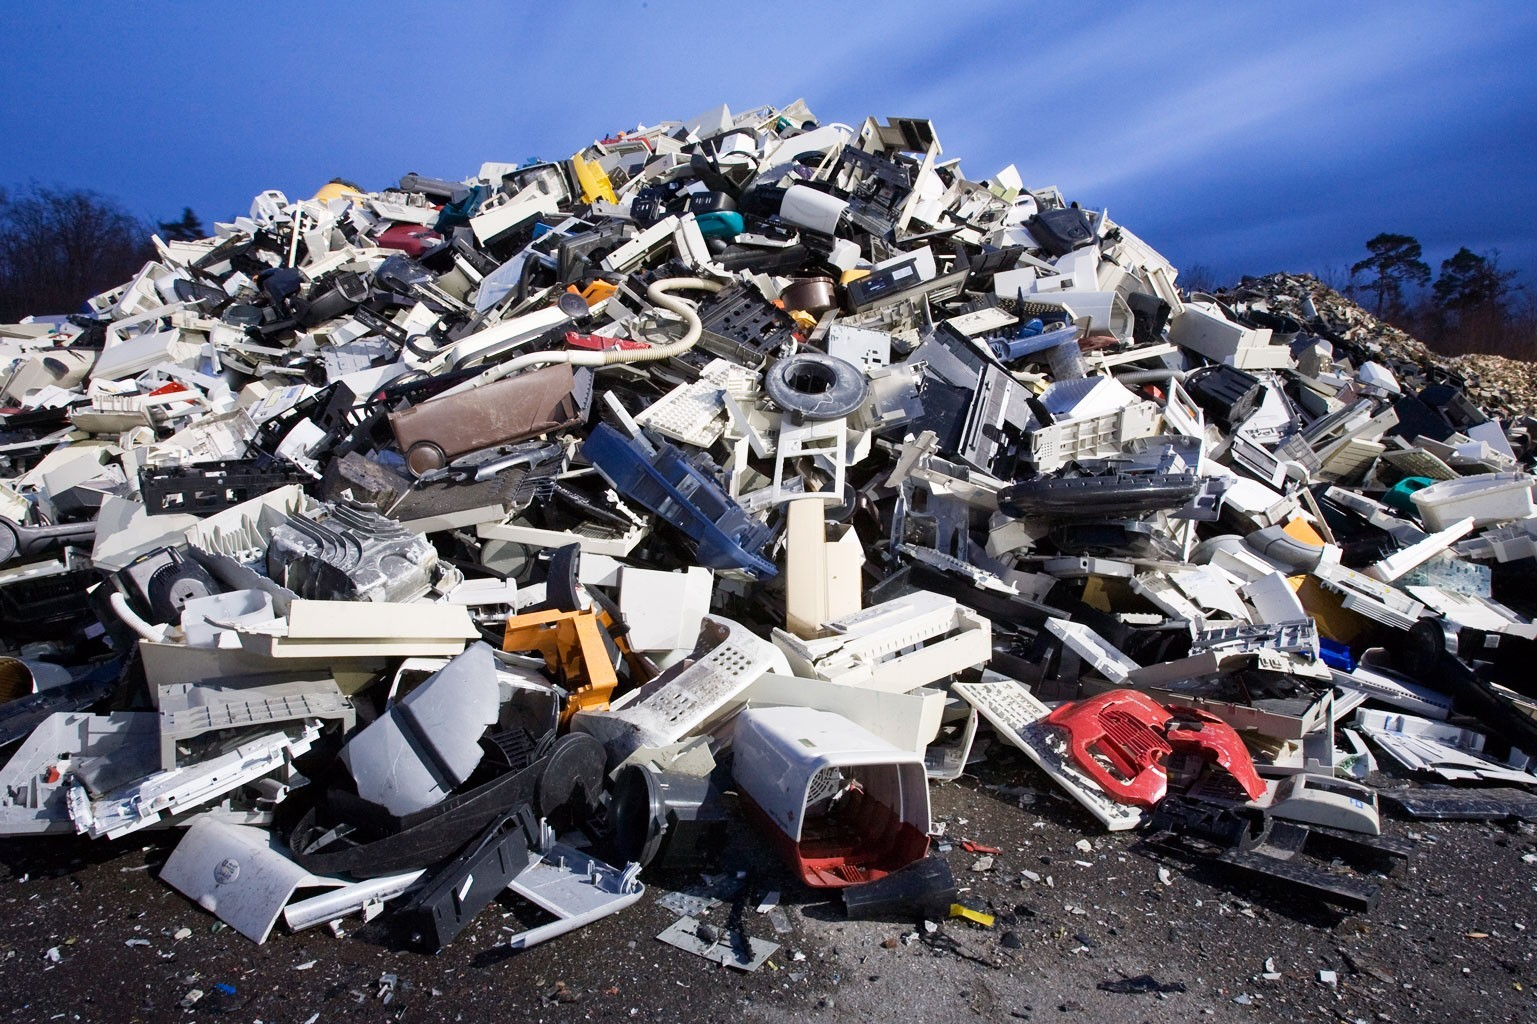 Plastics-from-E-Waste-01.jpg